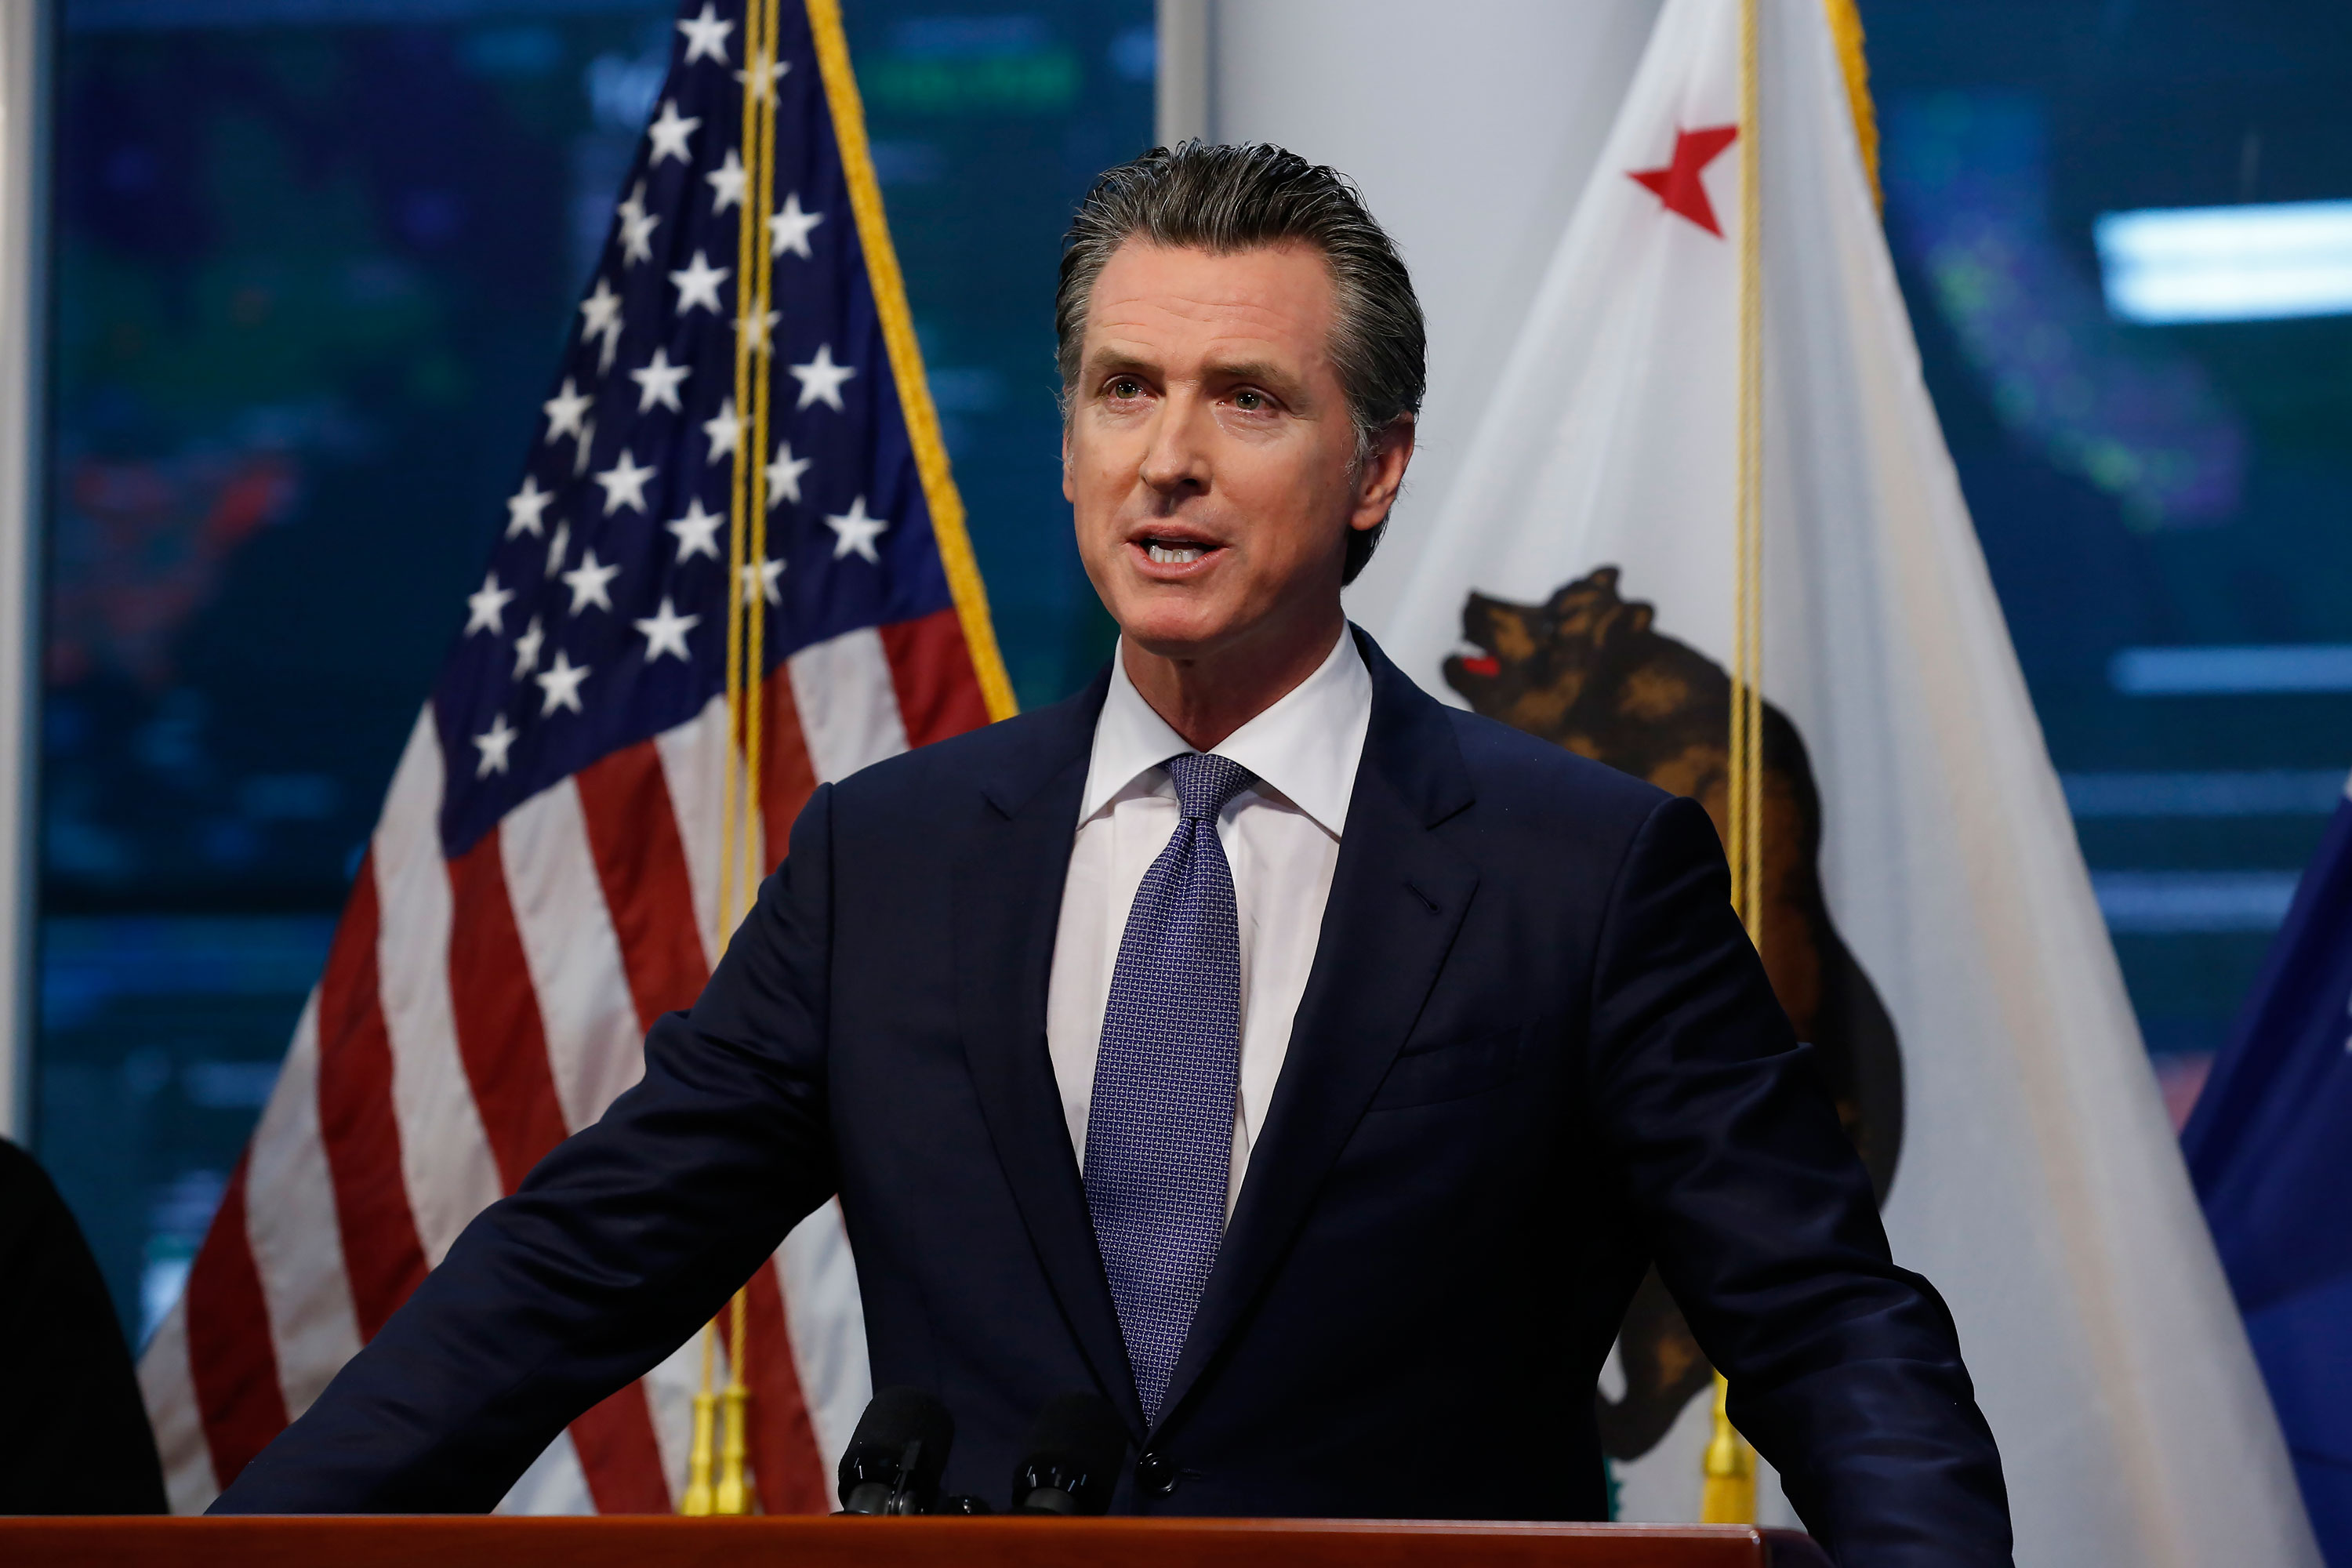 Gov. Gavin Newsom updates California's response to the coronavirus at the Governor's Office of Emergency Services in Rancho Cordova, California, on Monday, March 23.